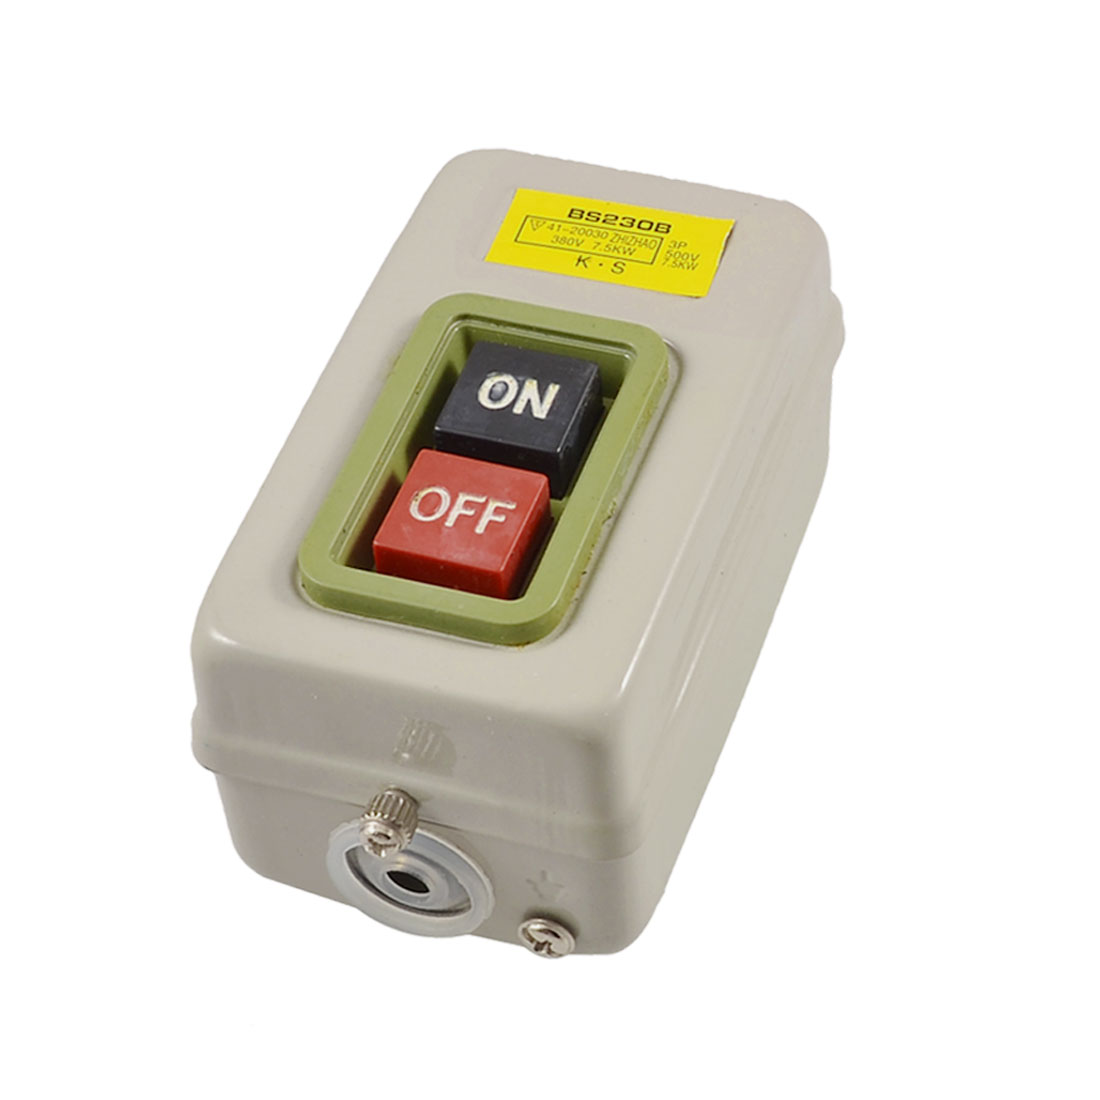 BS230B 3P 500V 7.5KW Screw Terminal Self Lock On/Off Power Pushbutton Switch